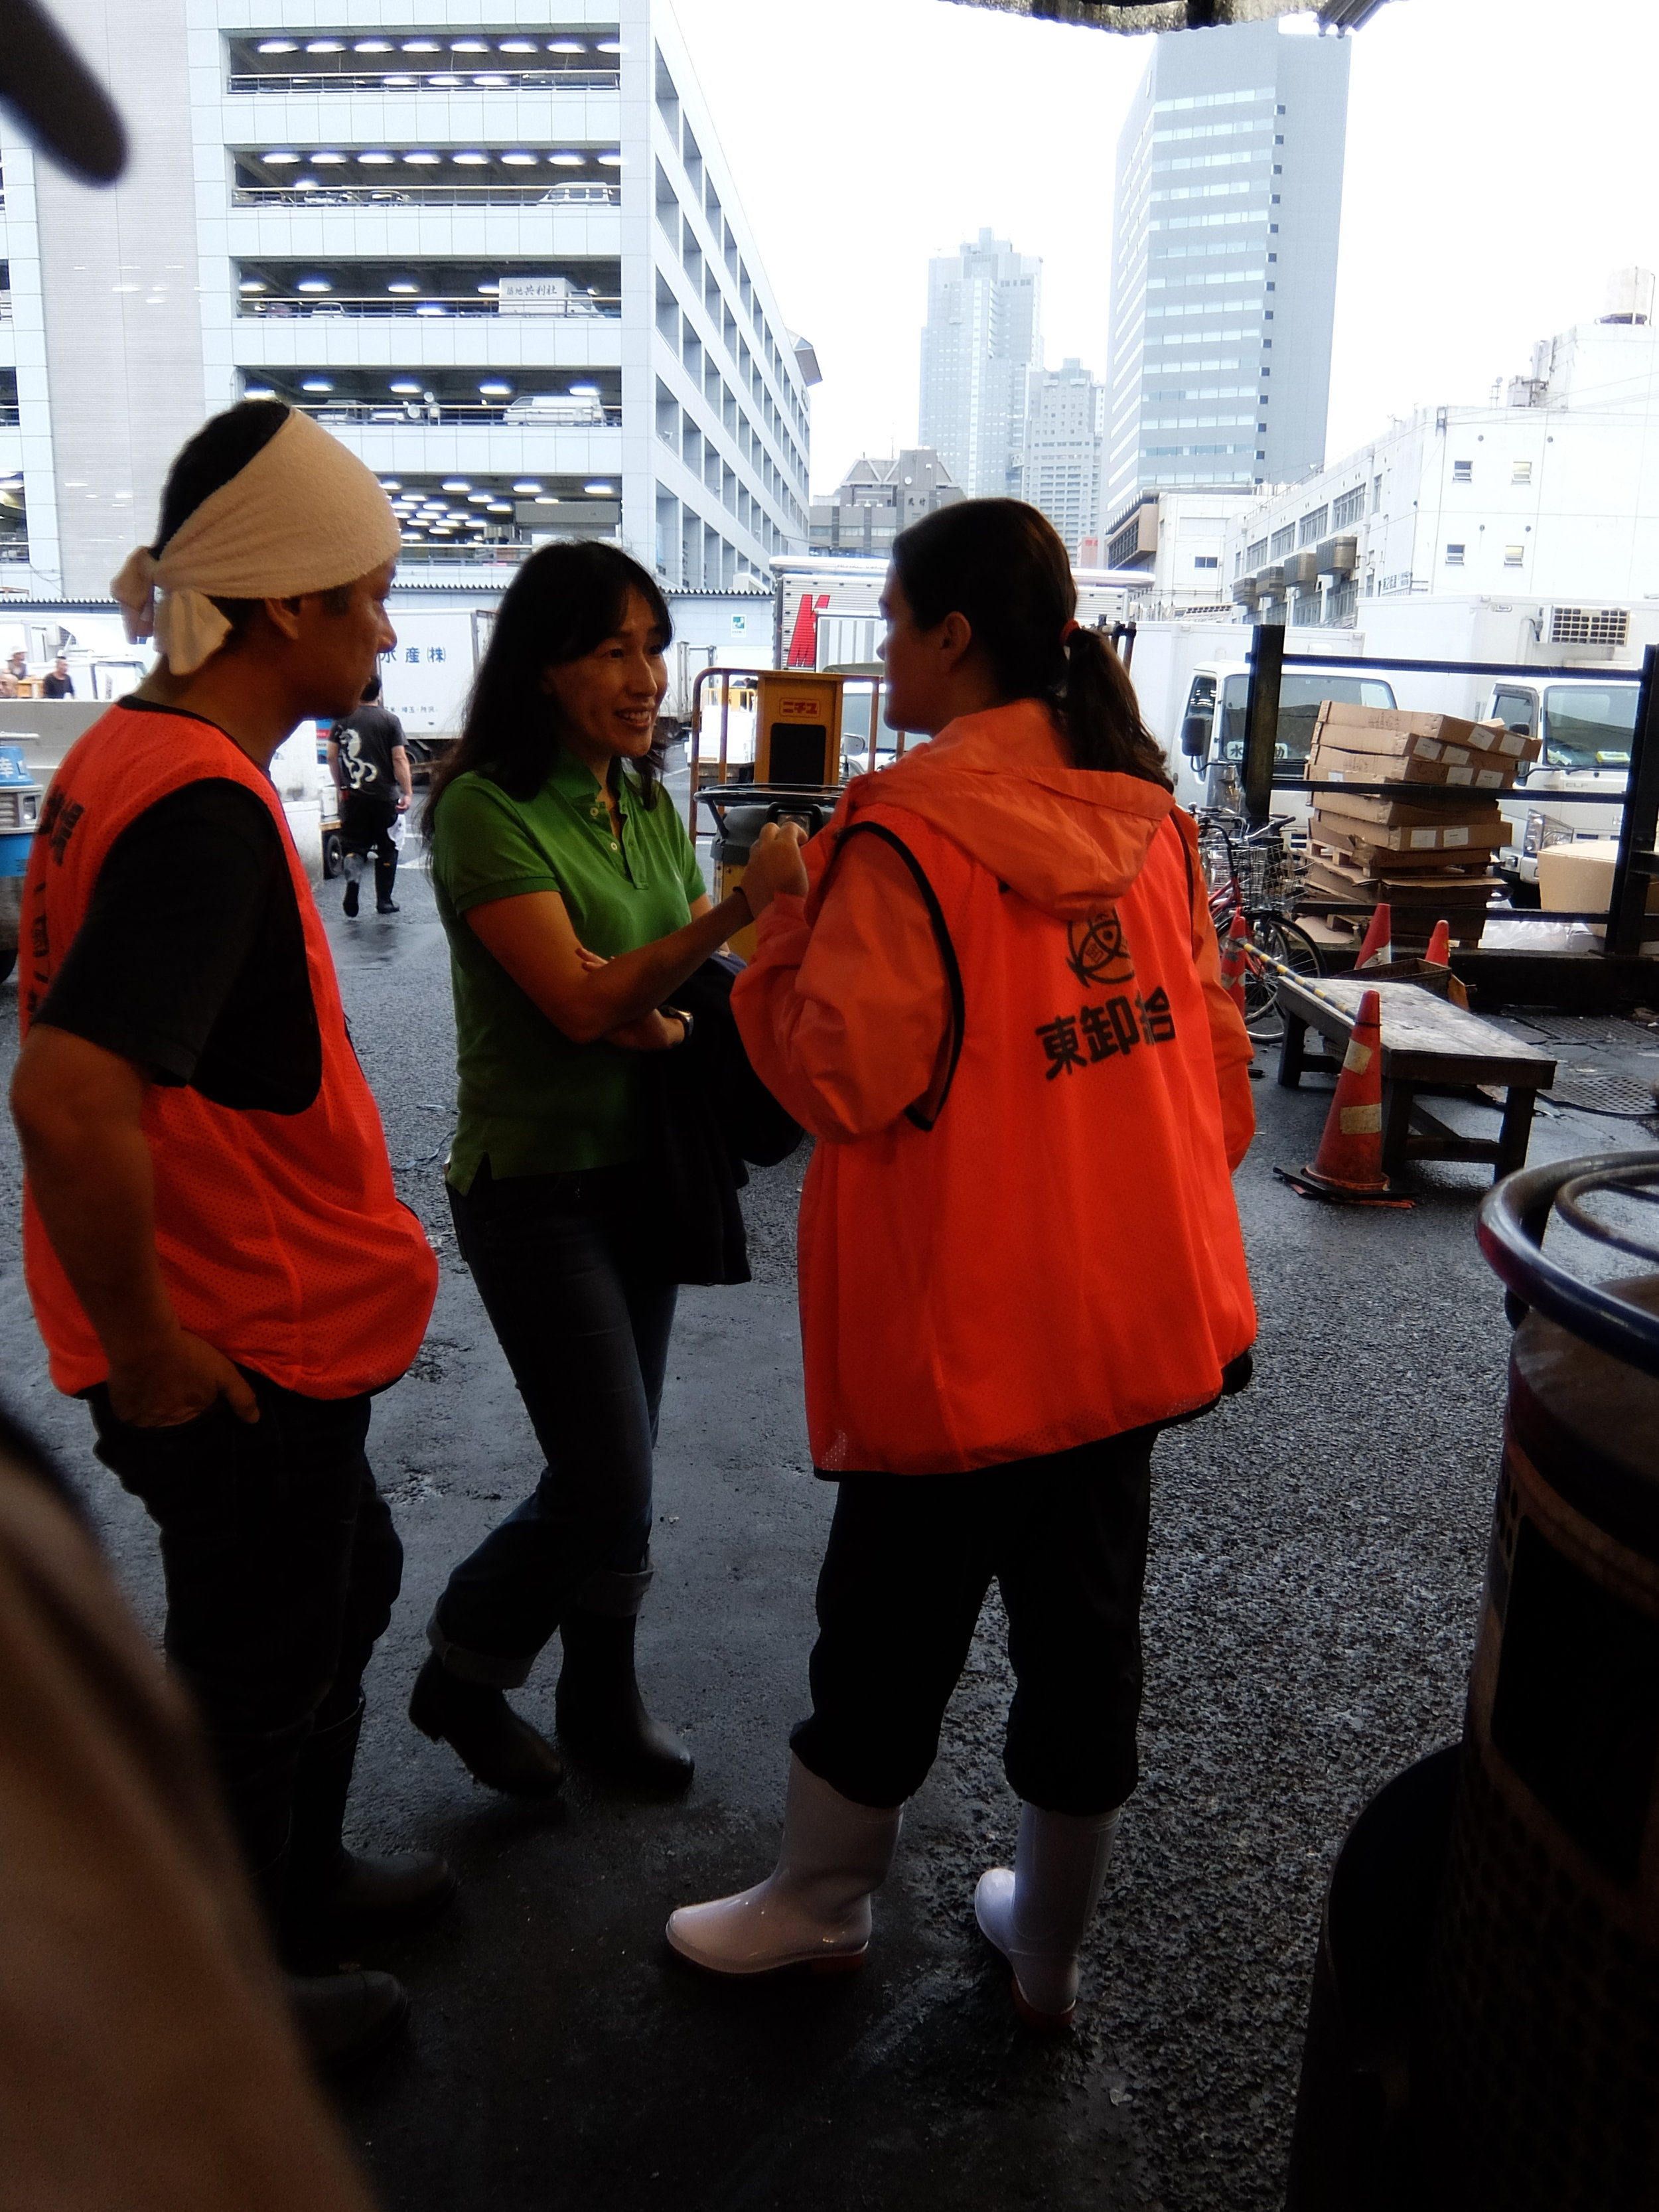 Discussing global warming at the world's largest fish market, Tsukiji in Tokyo